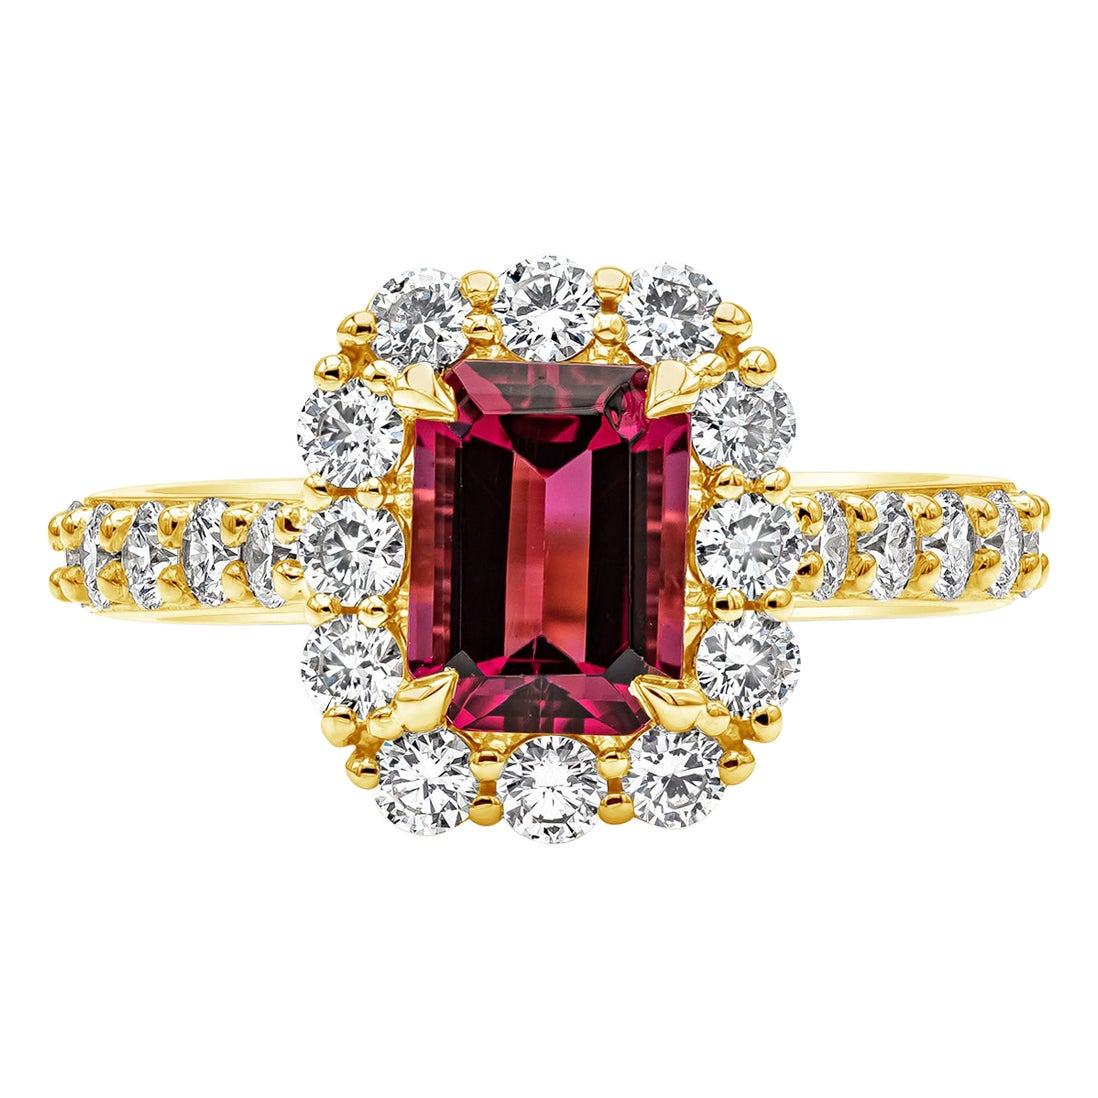 1.58 Carat Emerald Cut Rubellite and Diamond Halo Engagement Ring